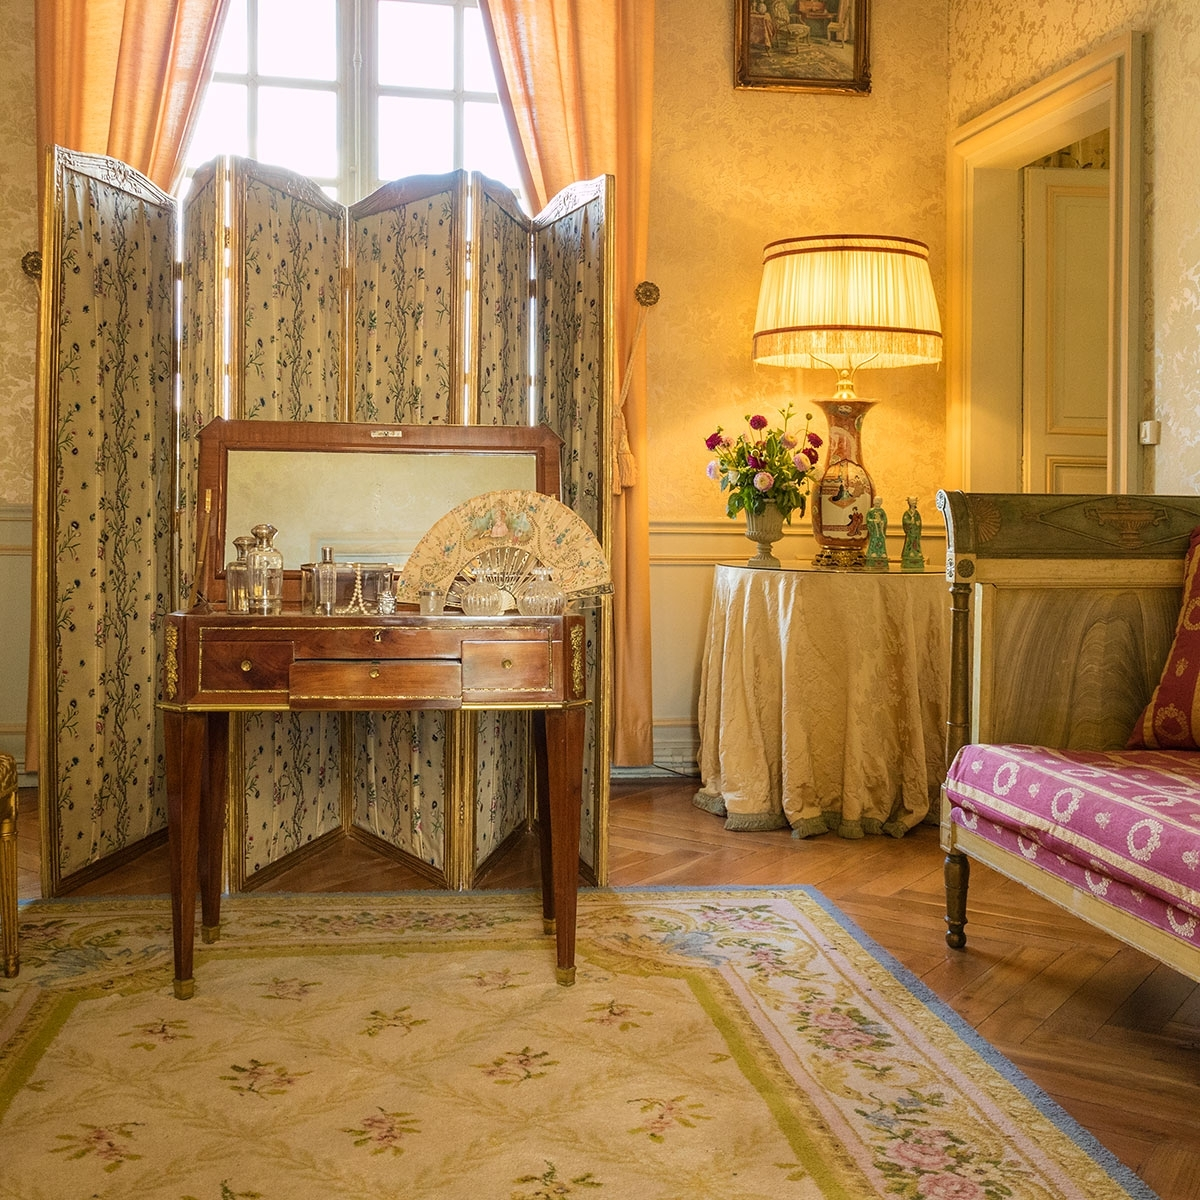 This delicate and harmonious balance of colours and patterns shows just how clever yet regal these designs were.